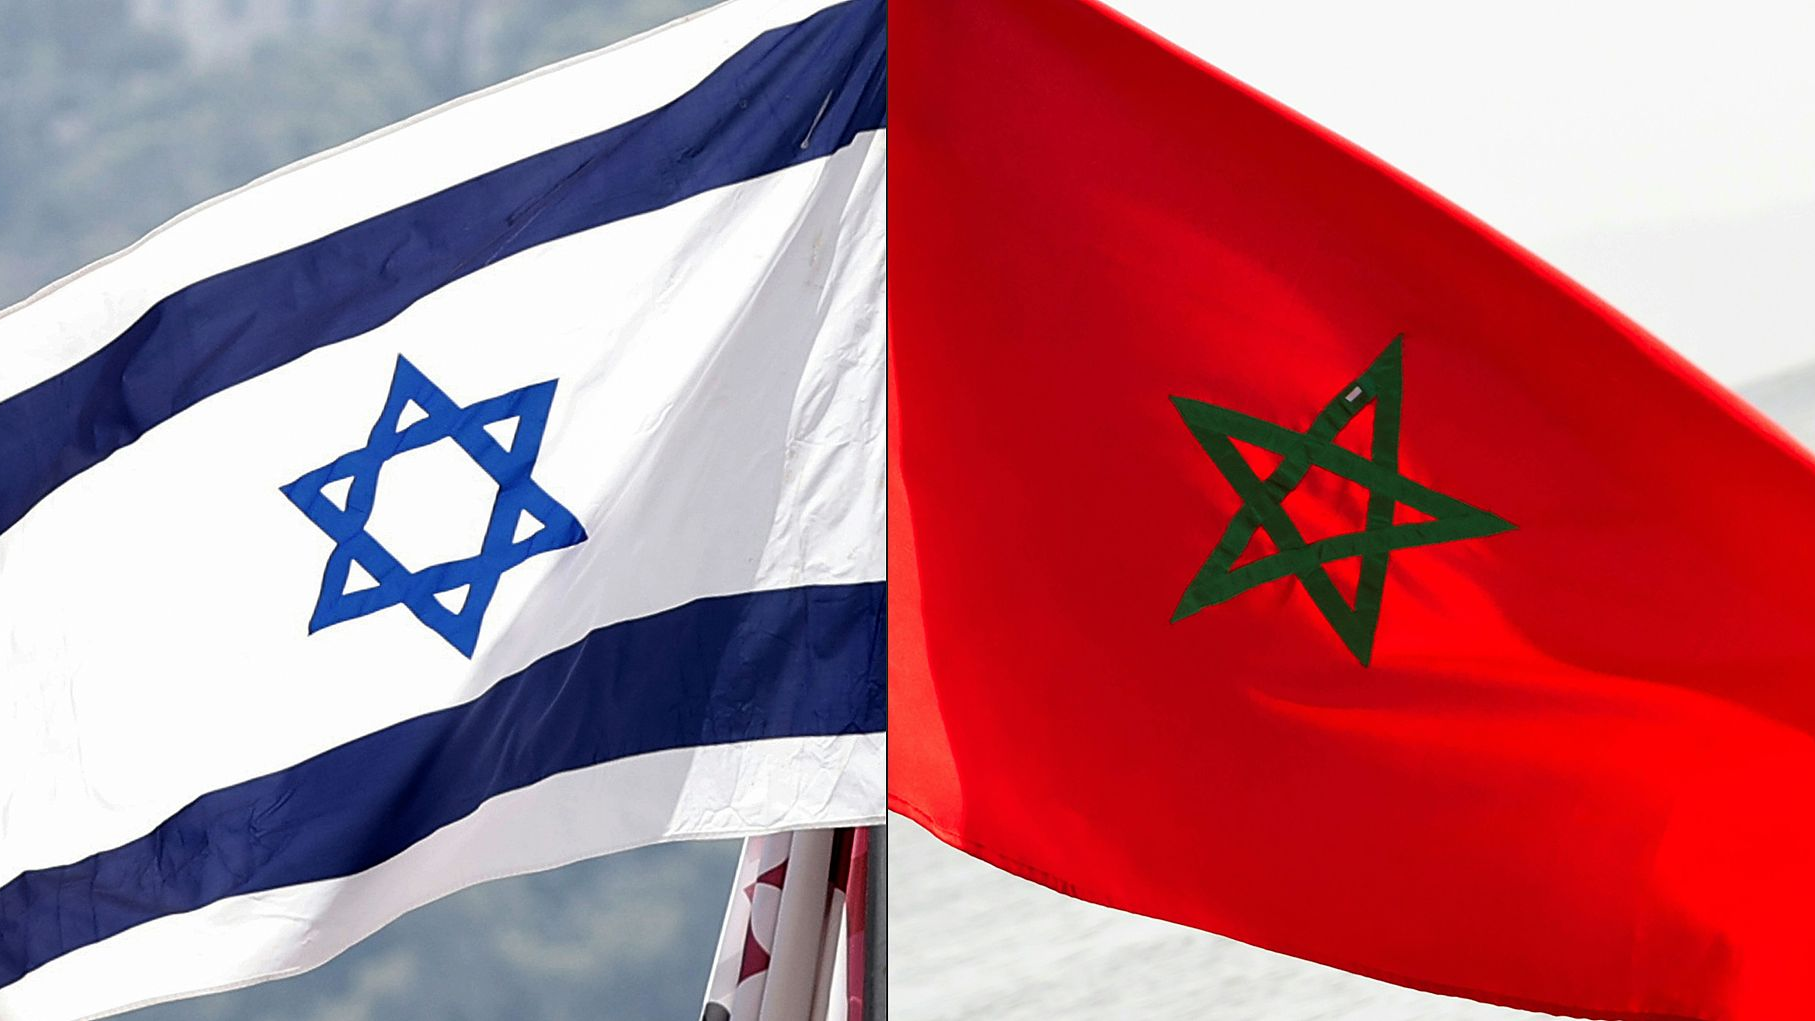 Moroccan Islamist groups reject normalizing ties with Israel